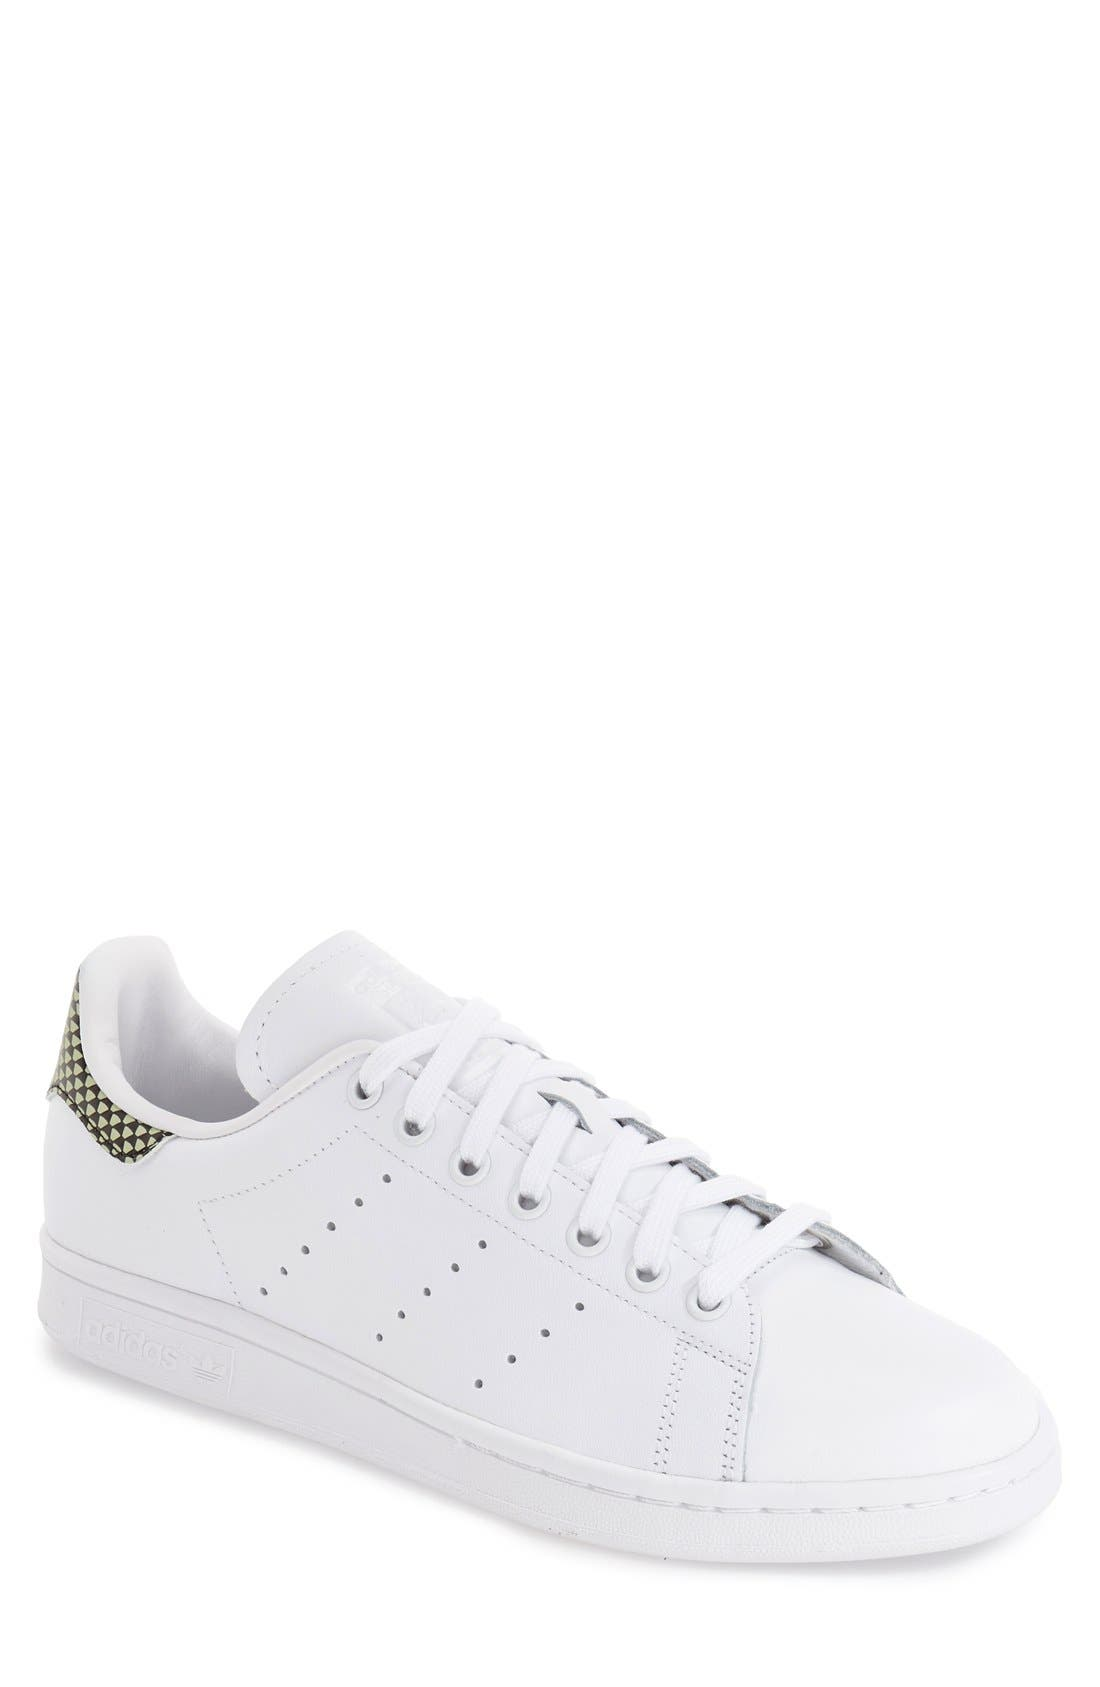 'Stan Smith' Sneaker,                         Main,                         color, White